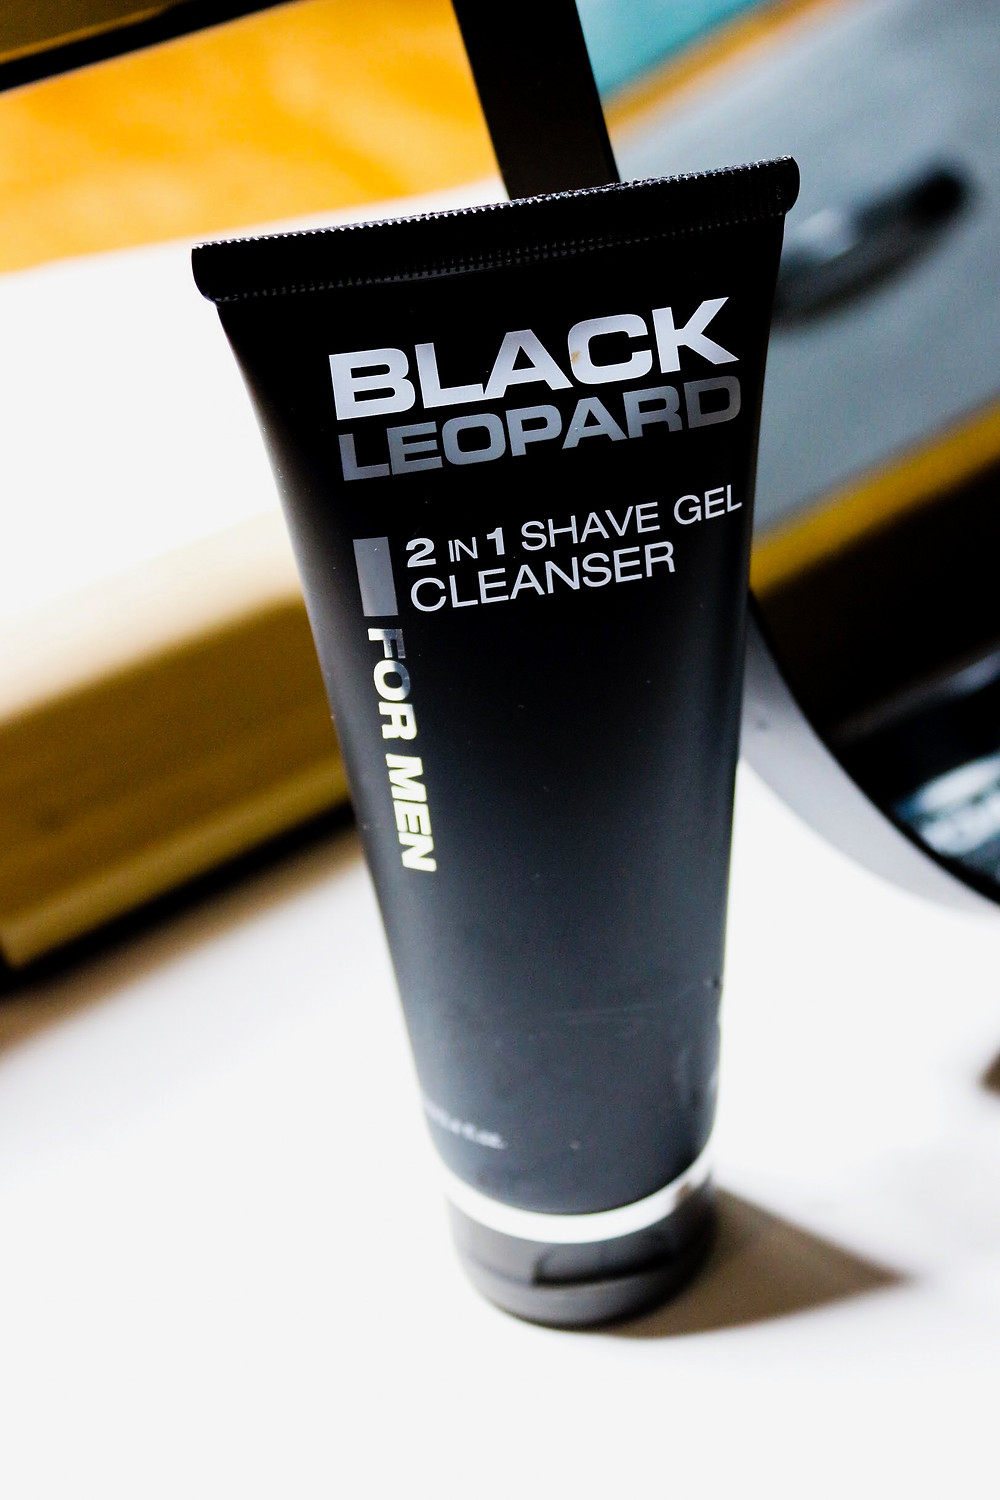 Black Leopard Shaving gel